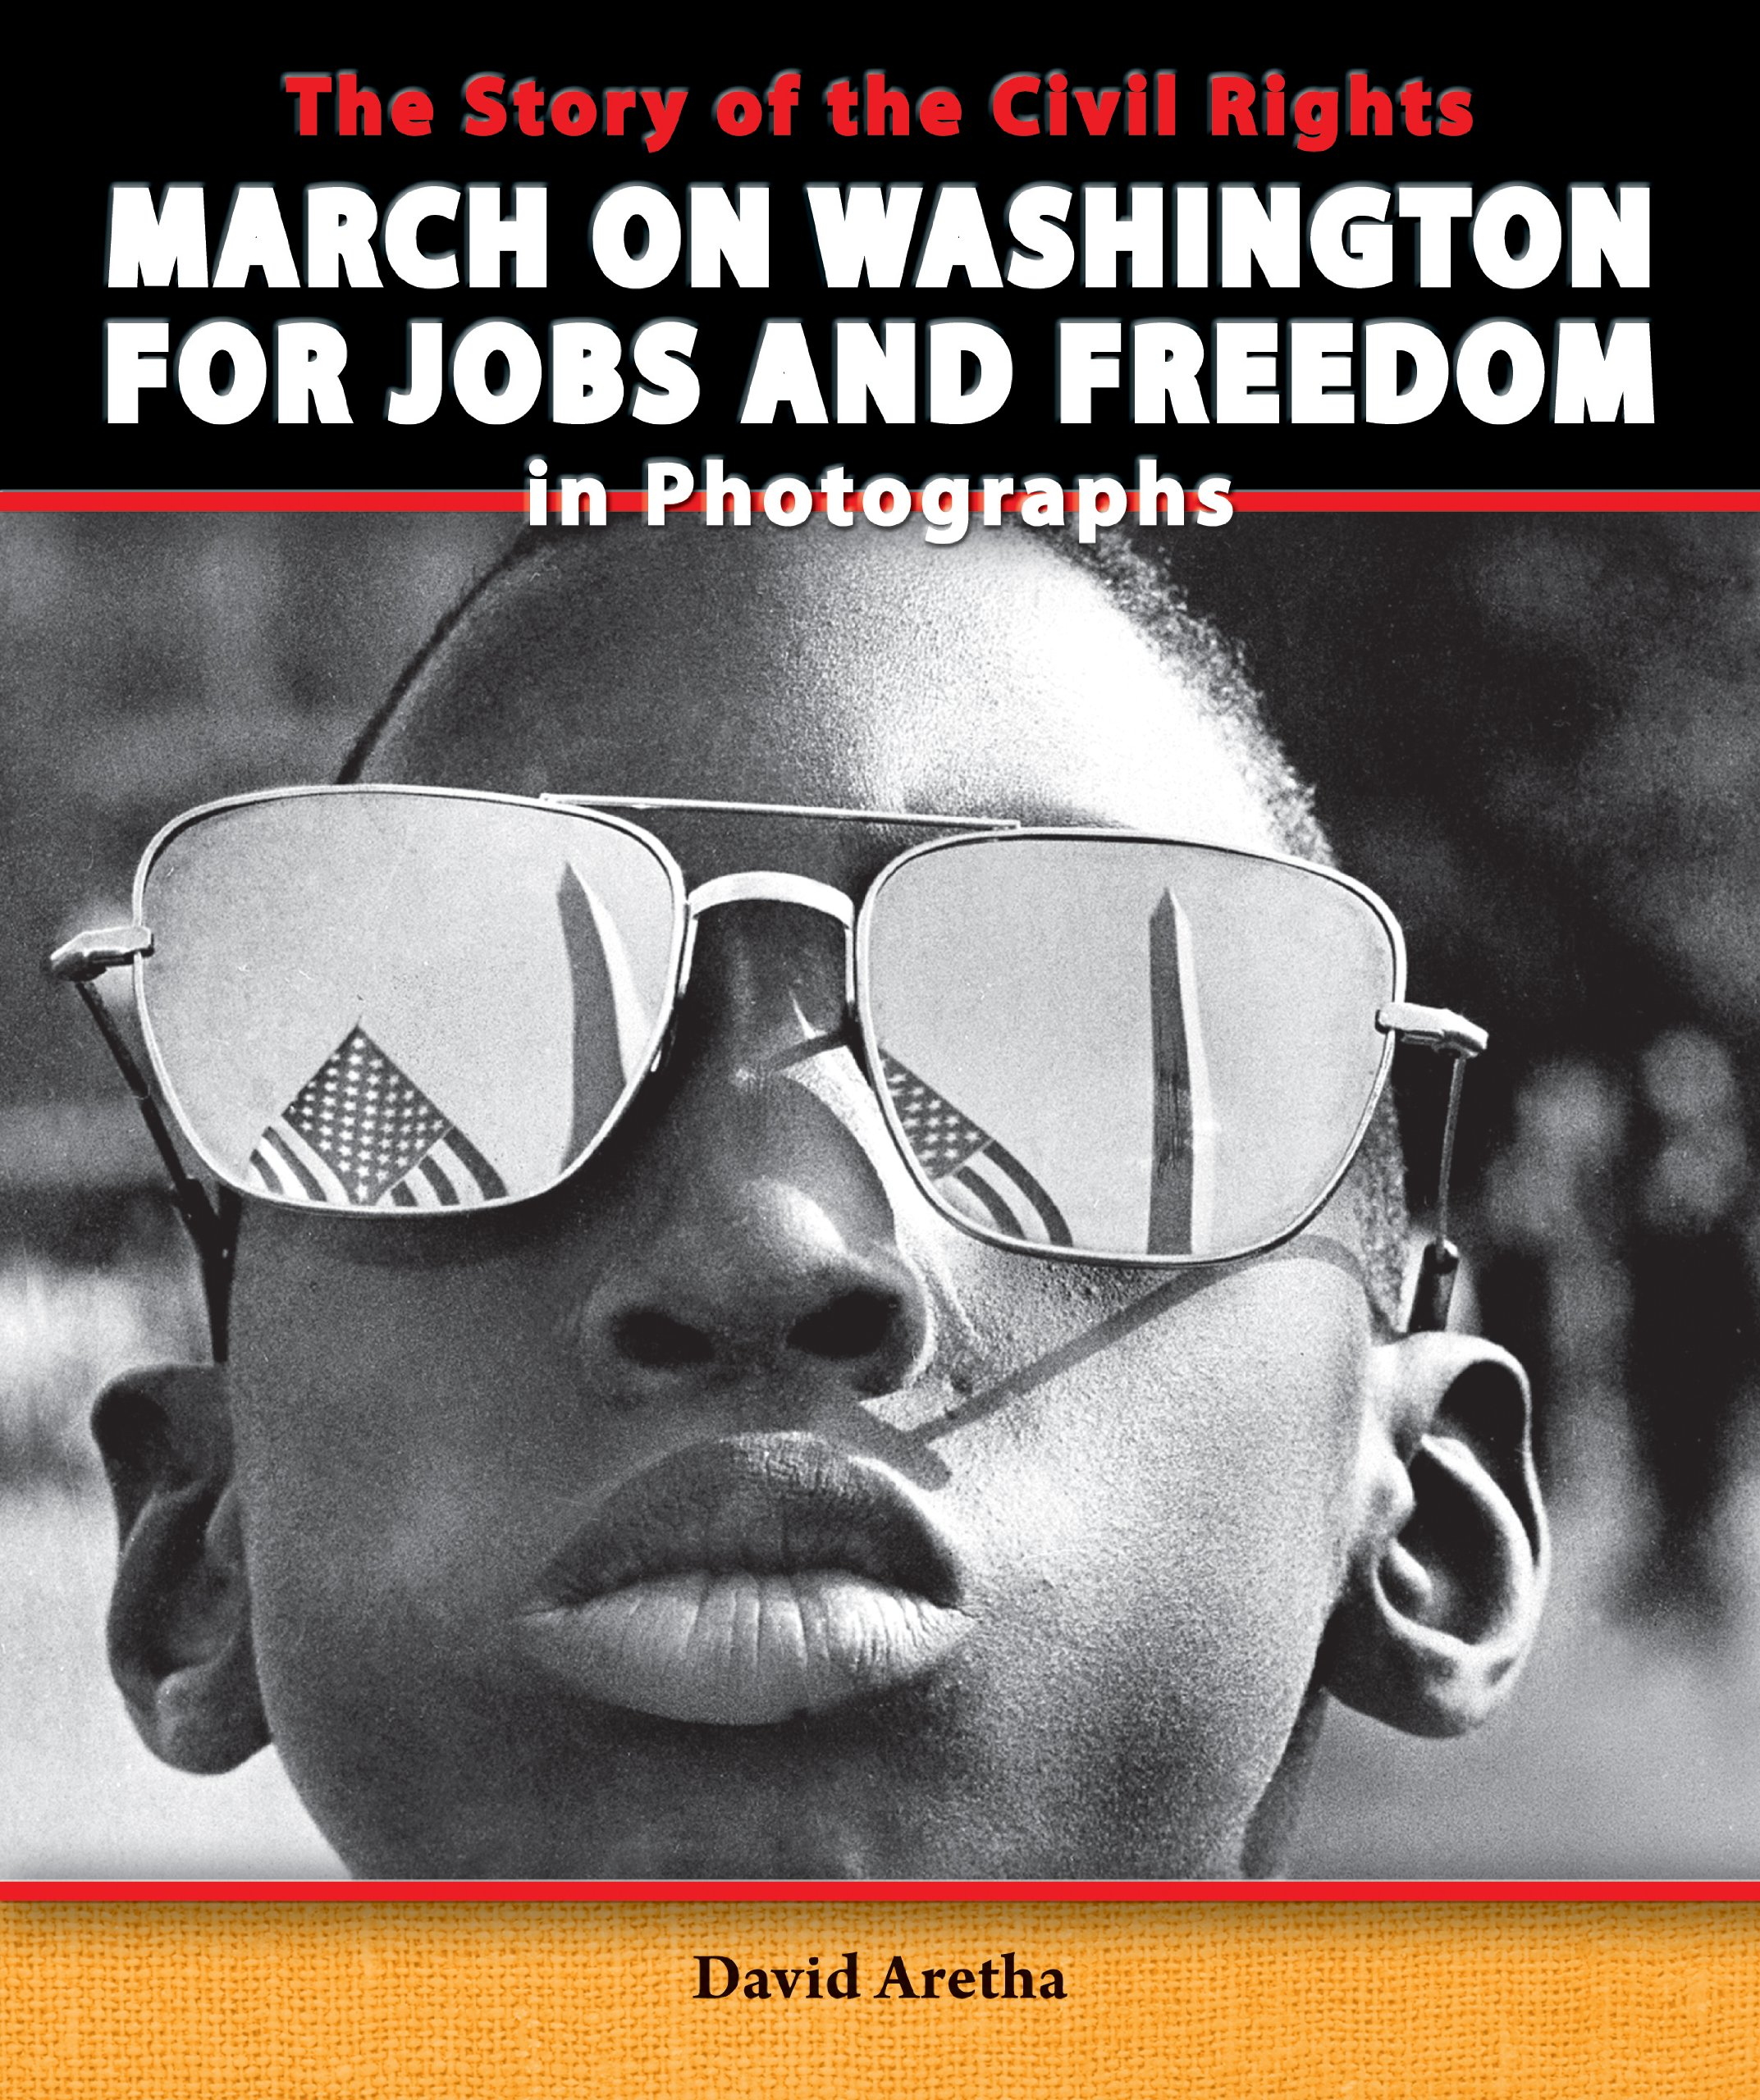 The Story of the Civil Rights March on Washington for Jobs and Freedom in Photographs (Story of the Civil Rights Movement in Photographs) ebook